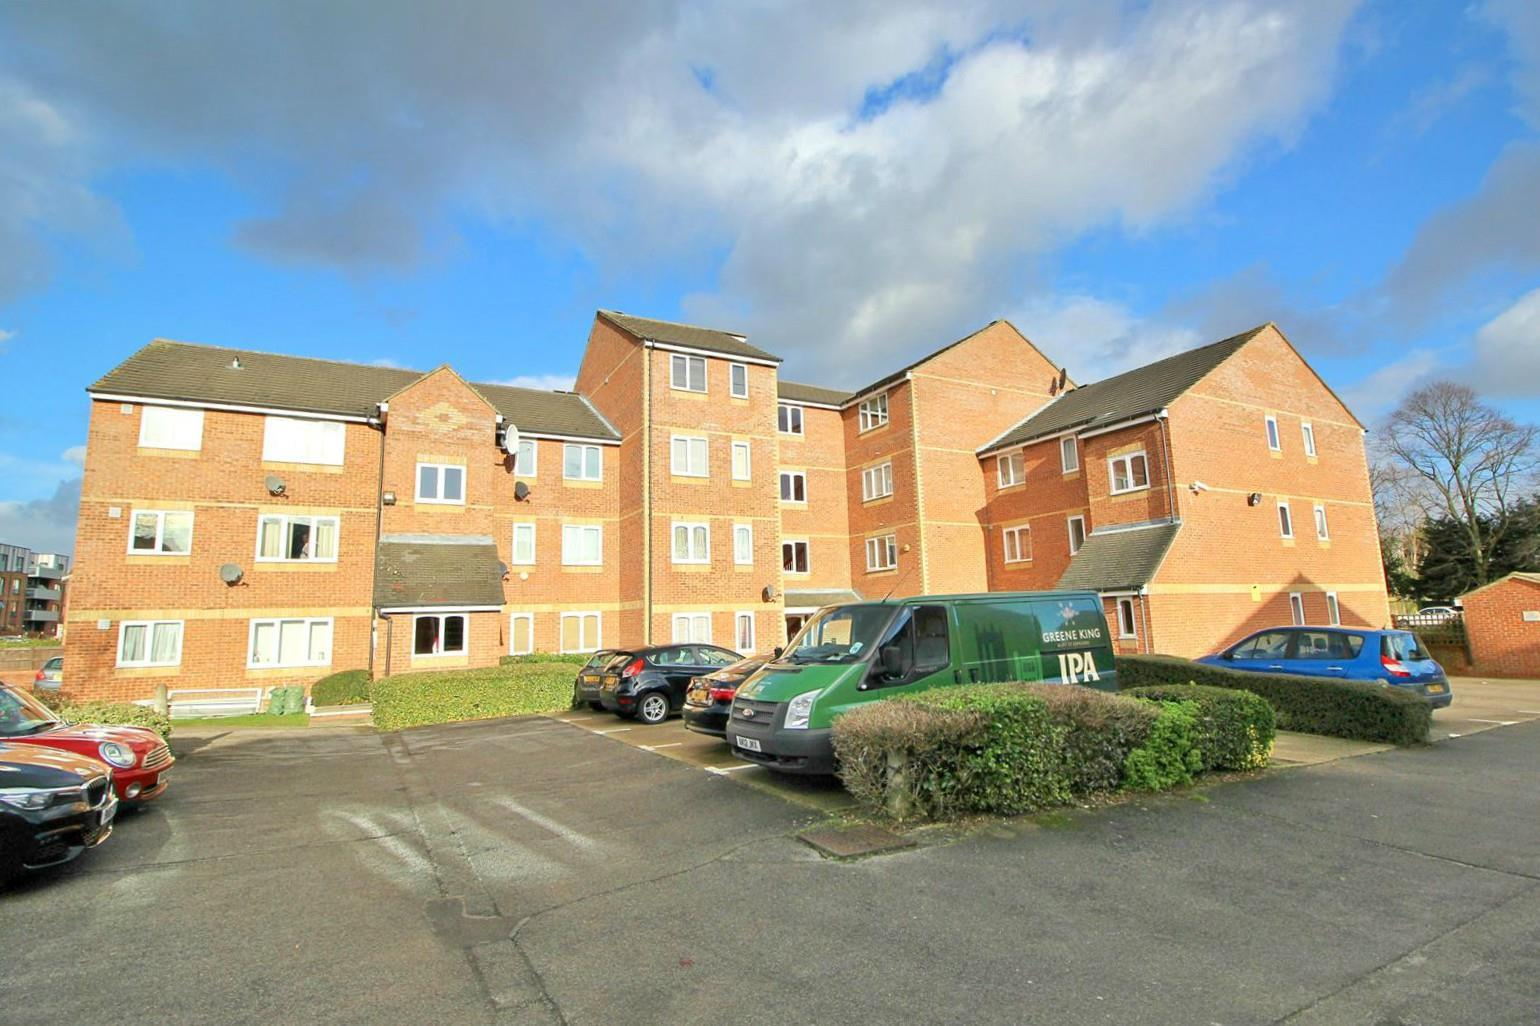 Linwood Crescent, Enfield, Middlesex